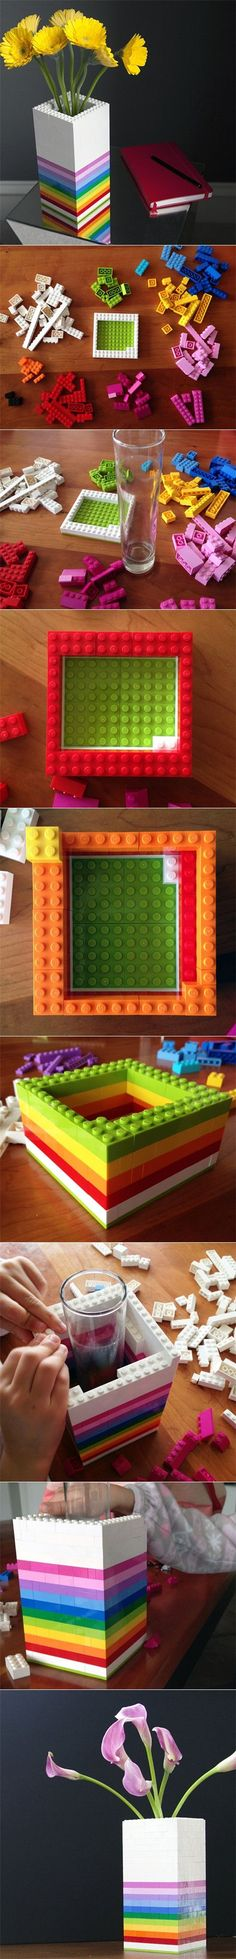 DIY Lego Vase....I don't think it has to be this complicated! Haha! But the idea is cute